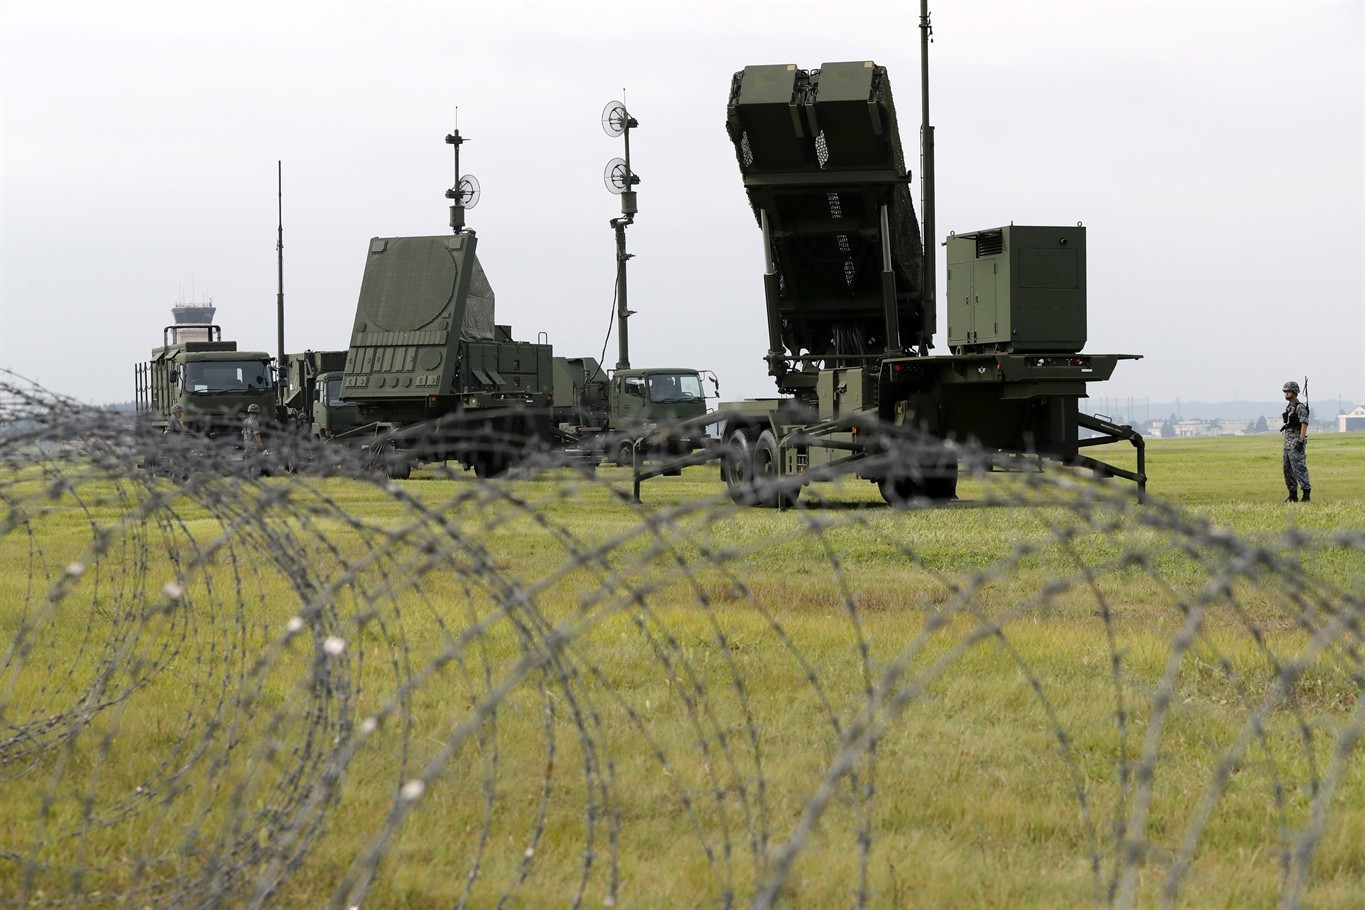 Japan to introduce land-based missile defense systems to bolster capabilities